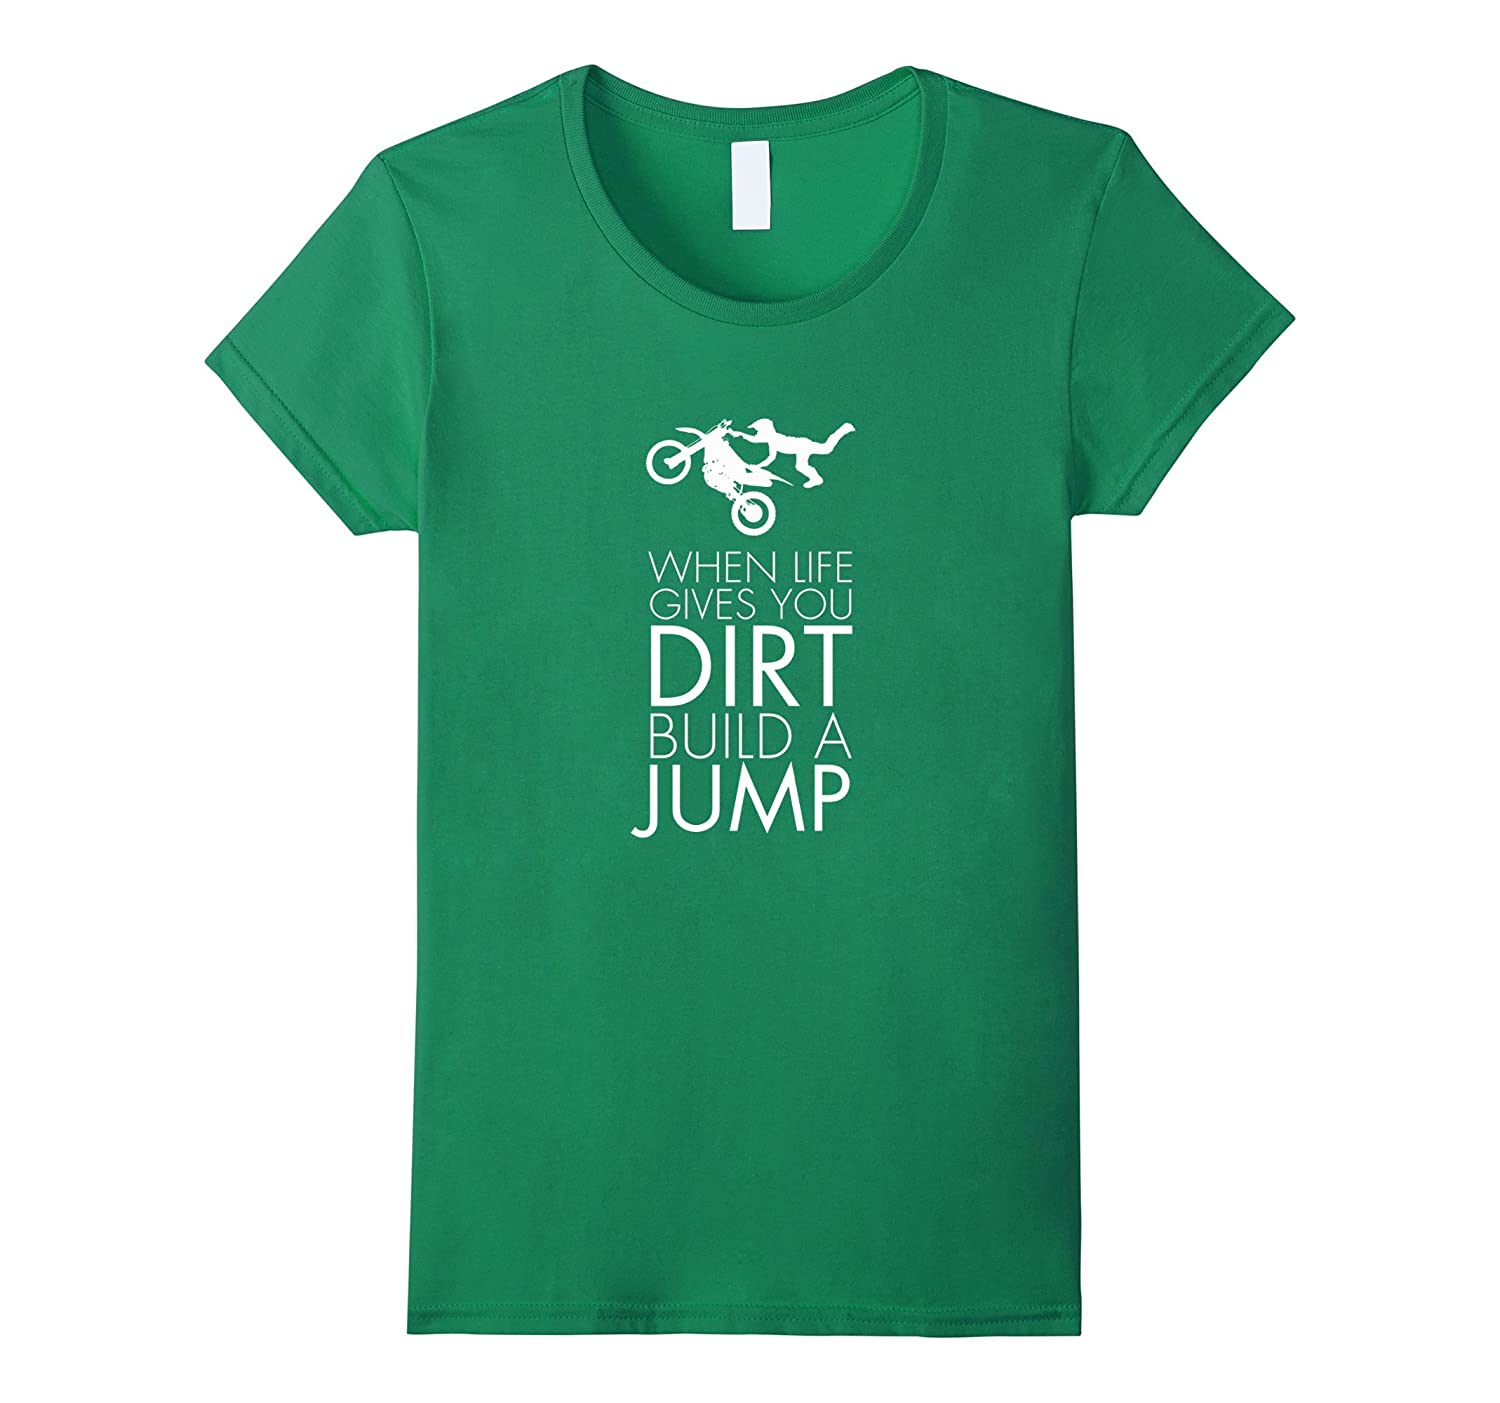 Amazon.com: MOTOCROSS T-SHIRT: WHEN LIFE GIVES YOU DIRT BUILD A JUMP: Clothing